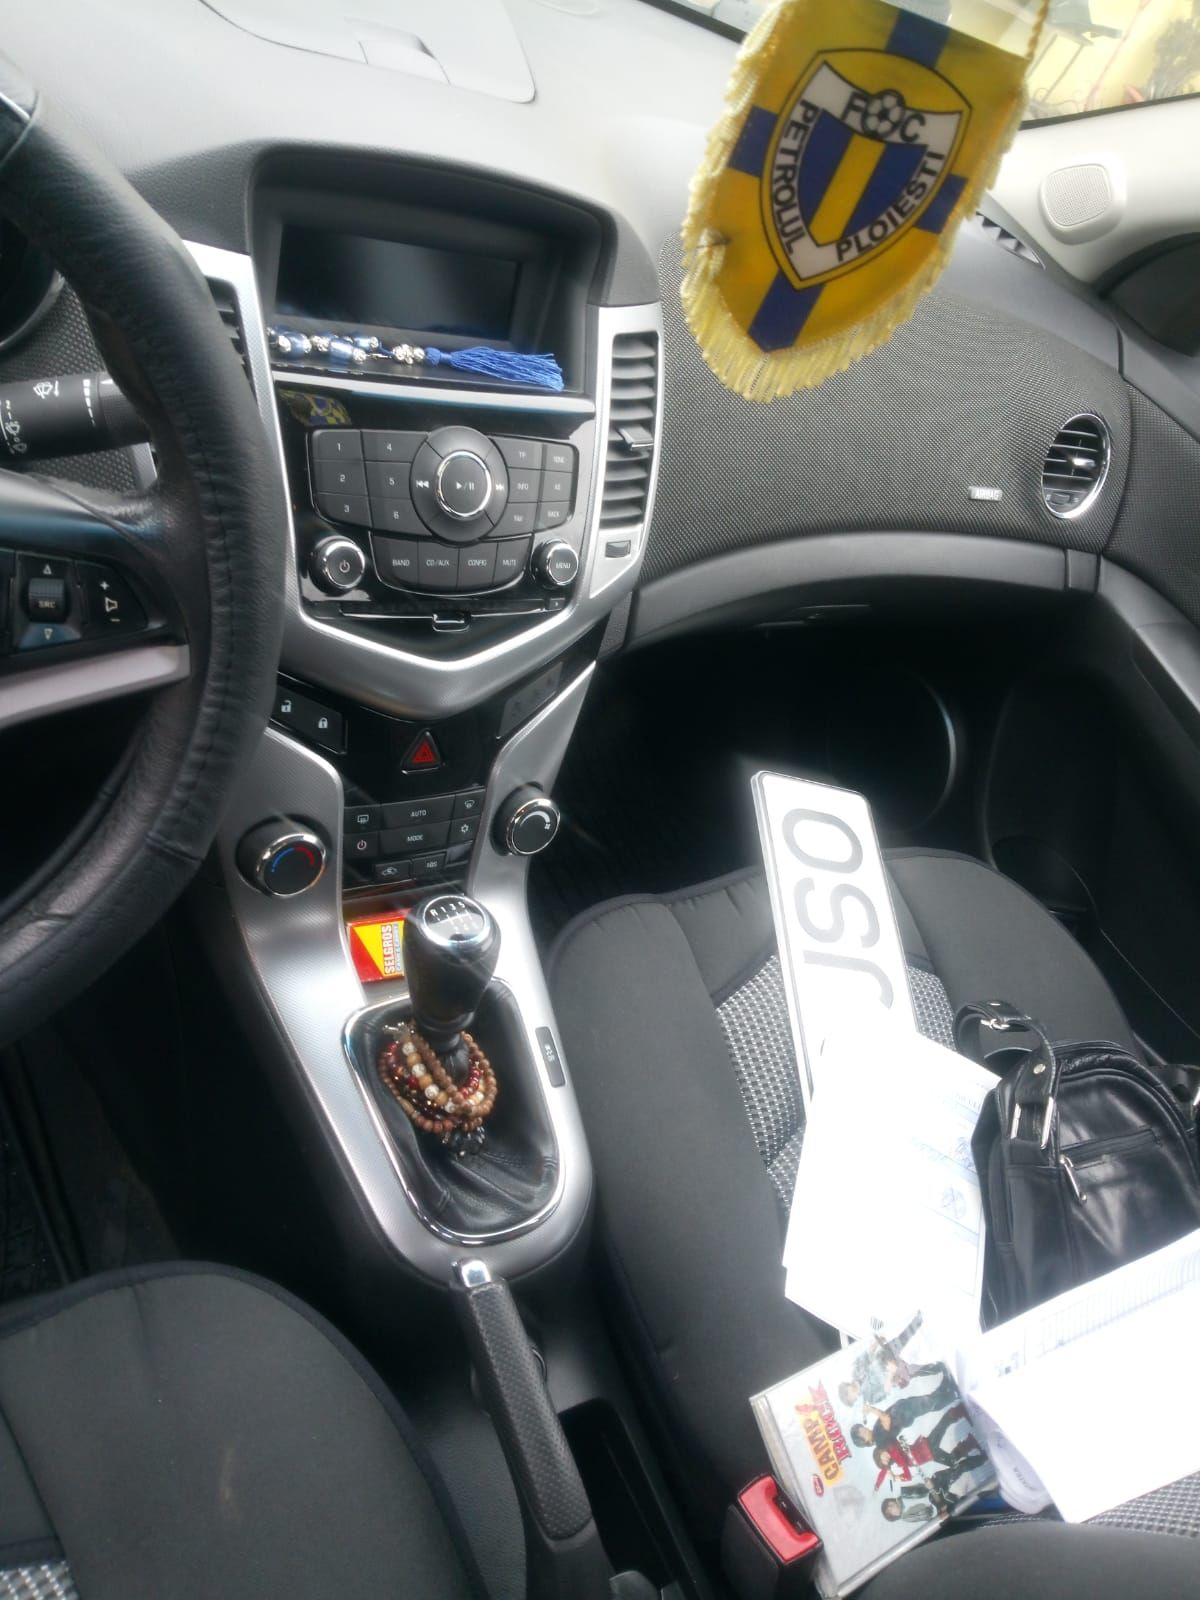 Chevrolet Cruze Swisorent interior